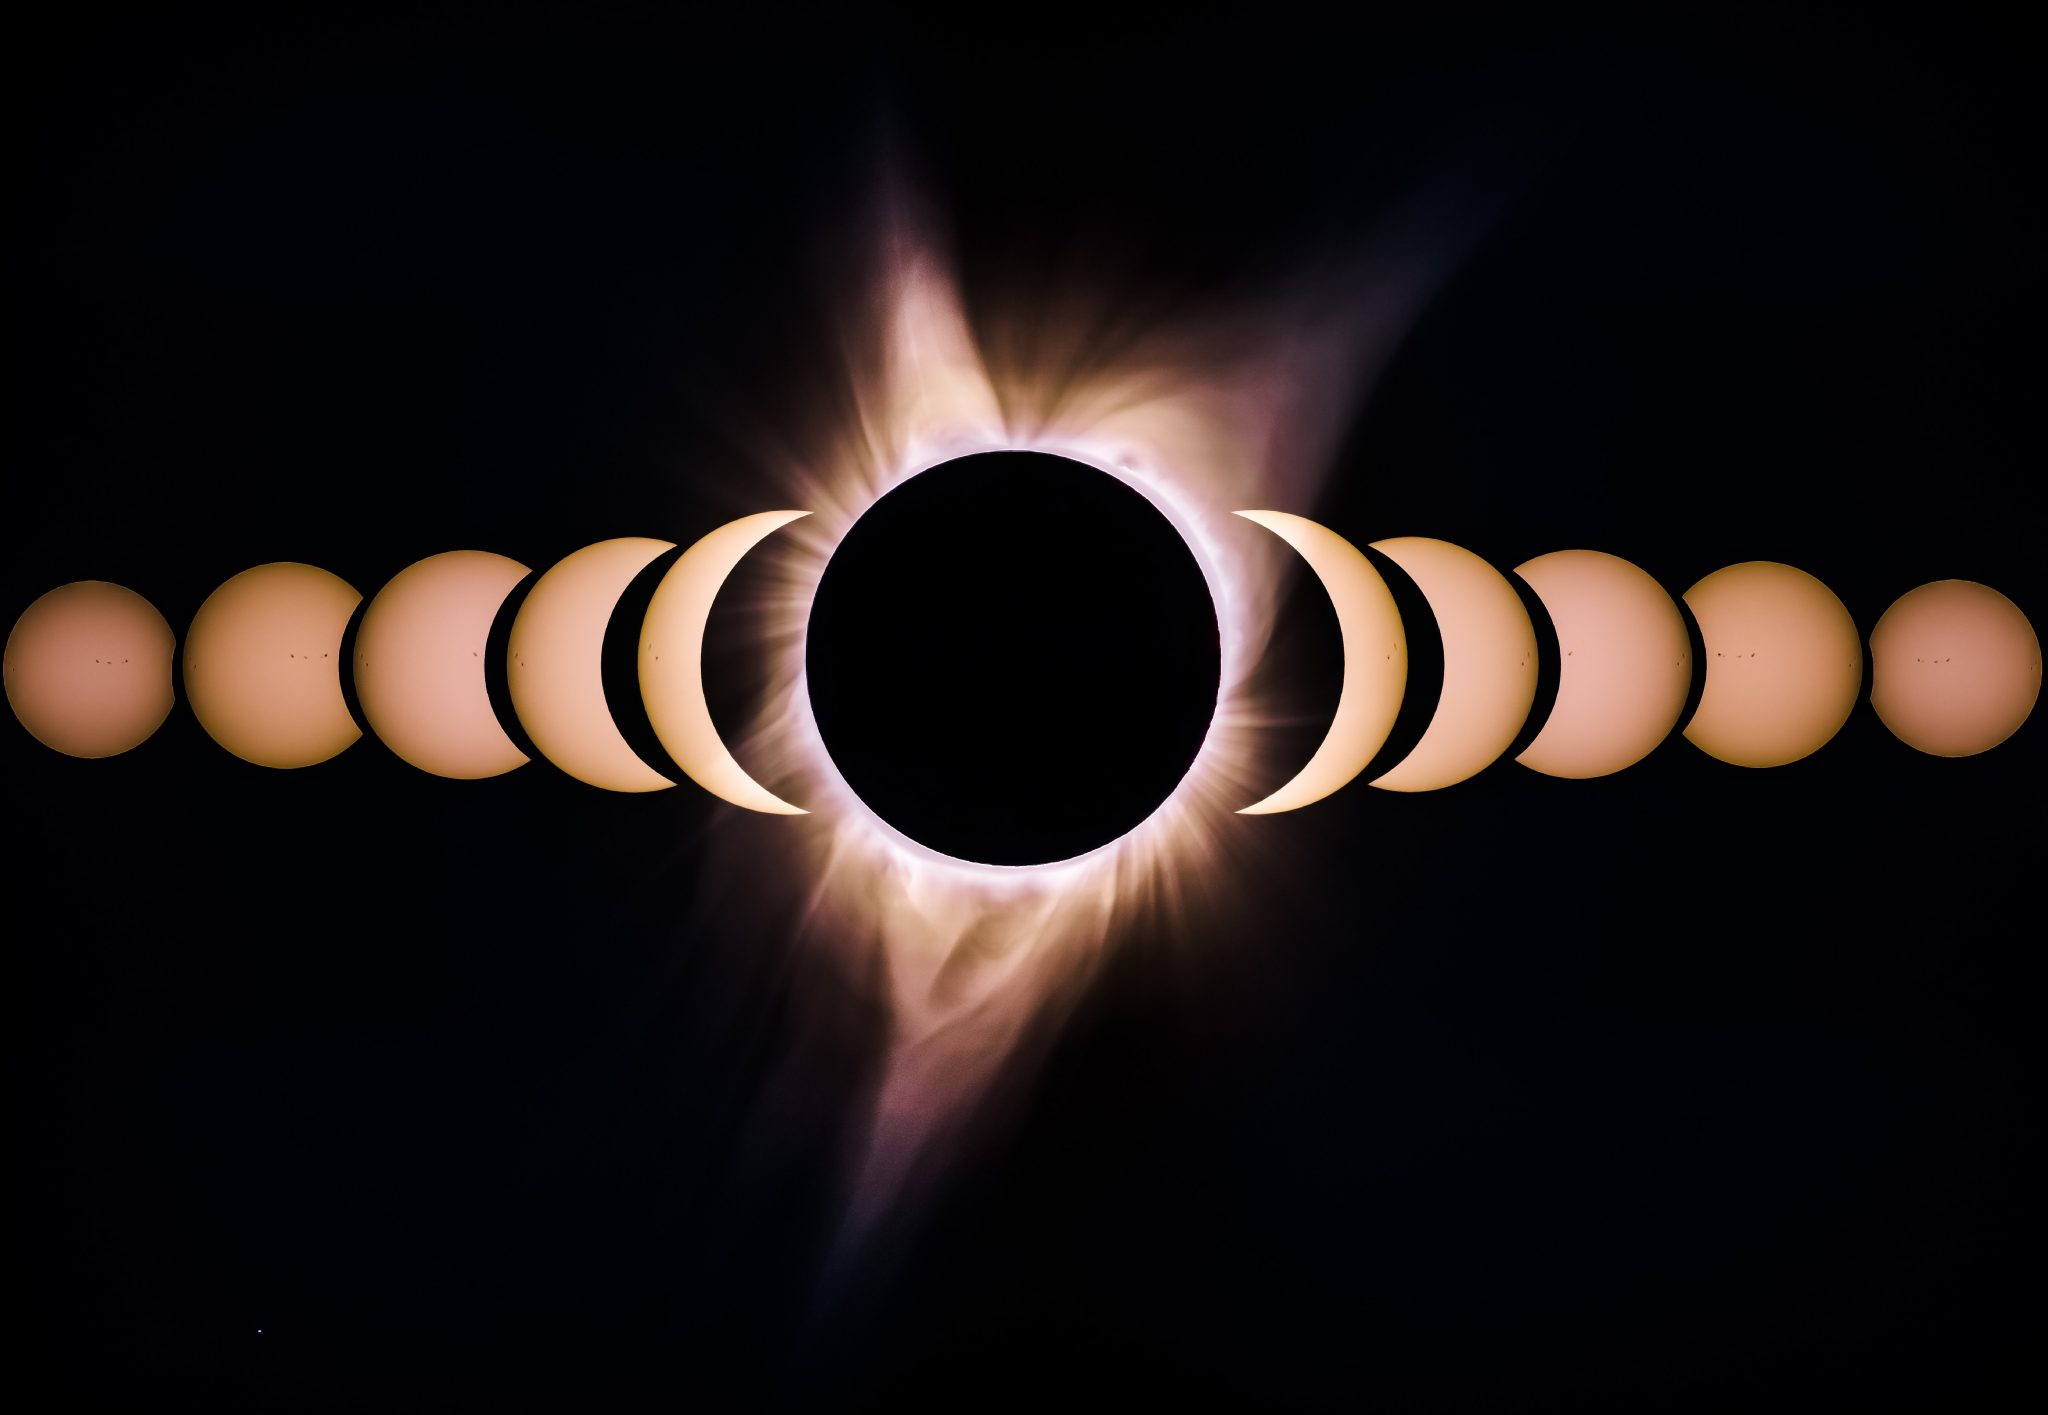 What Is the Sun Made Of and When Will It Die? | Article | Abakcus